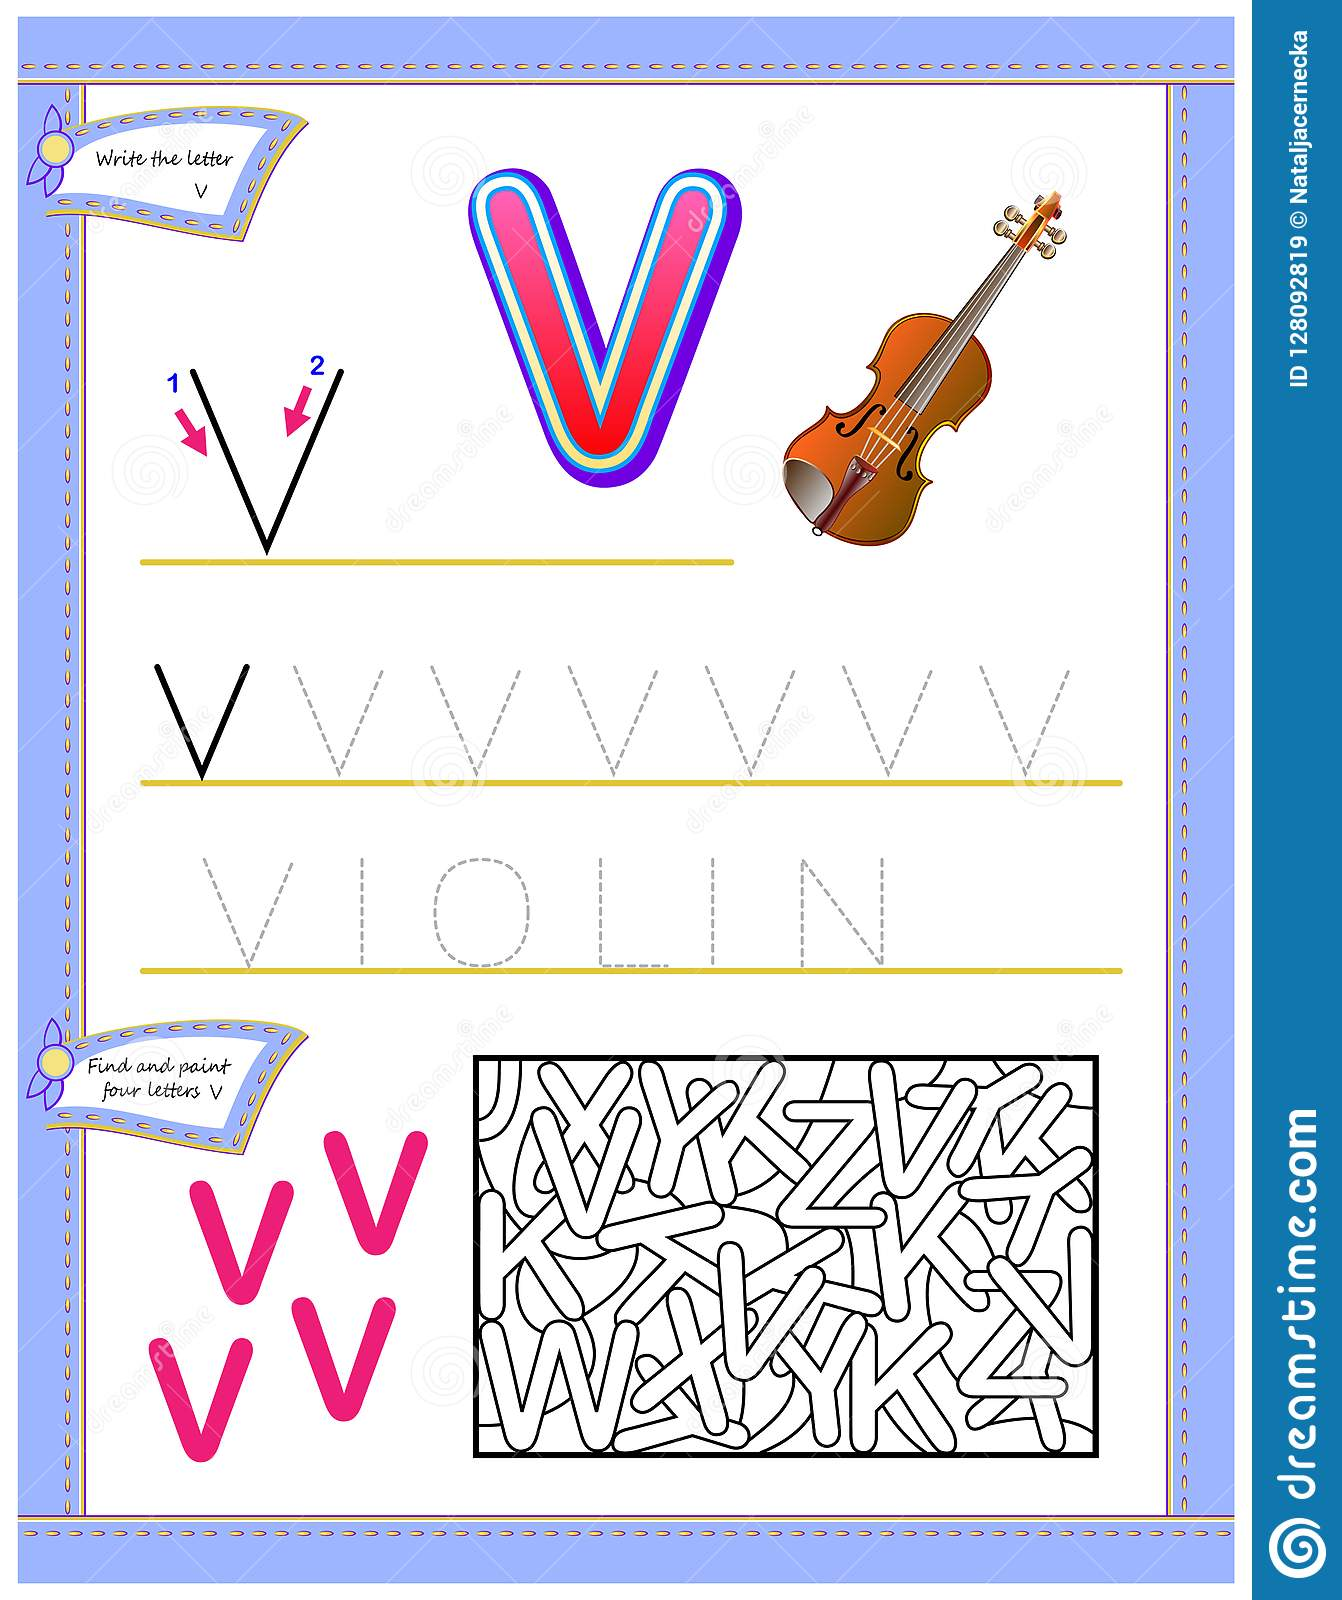 Worksheet For Kids With Letter V For Study English